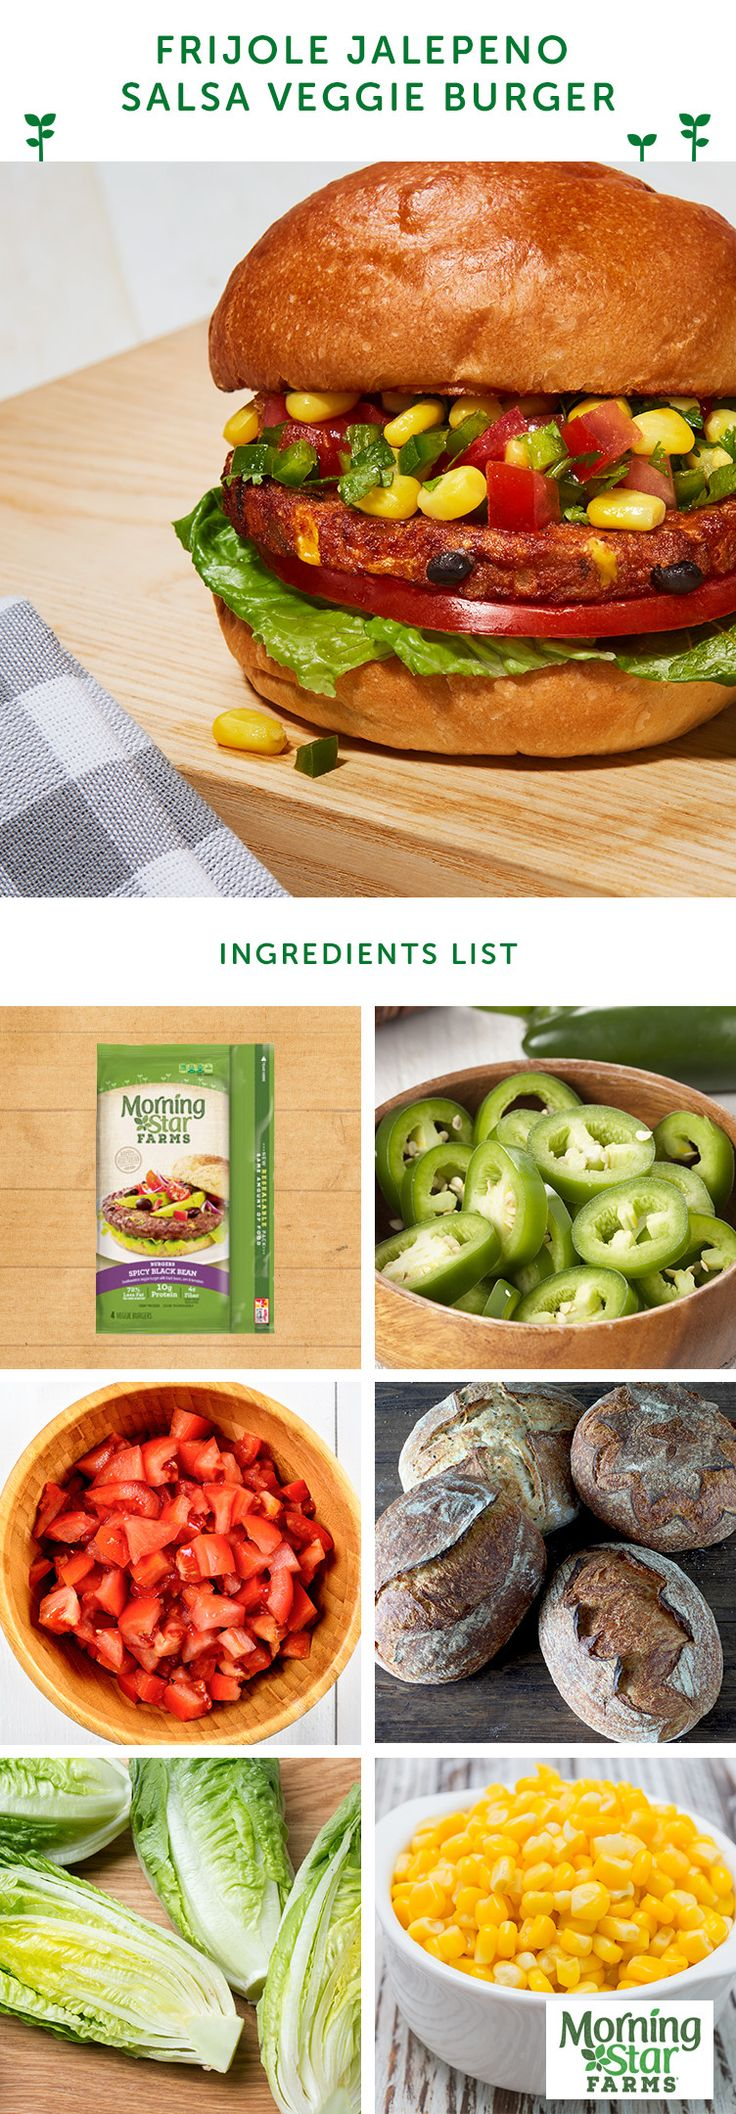 Satisfy your search for kick with the Frijole Jalapeno Salsa Burger. (Baking Eggplant Parmasean)